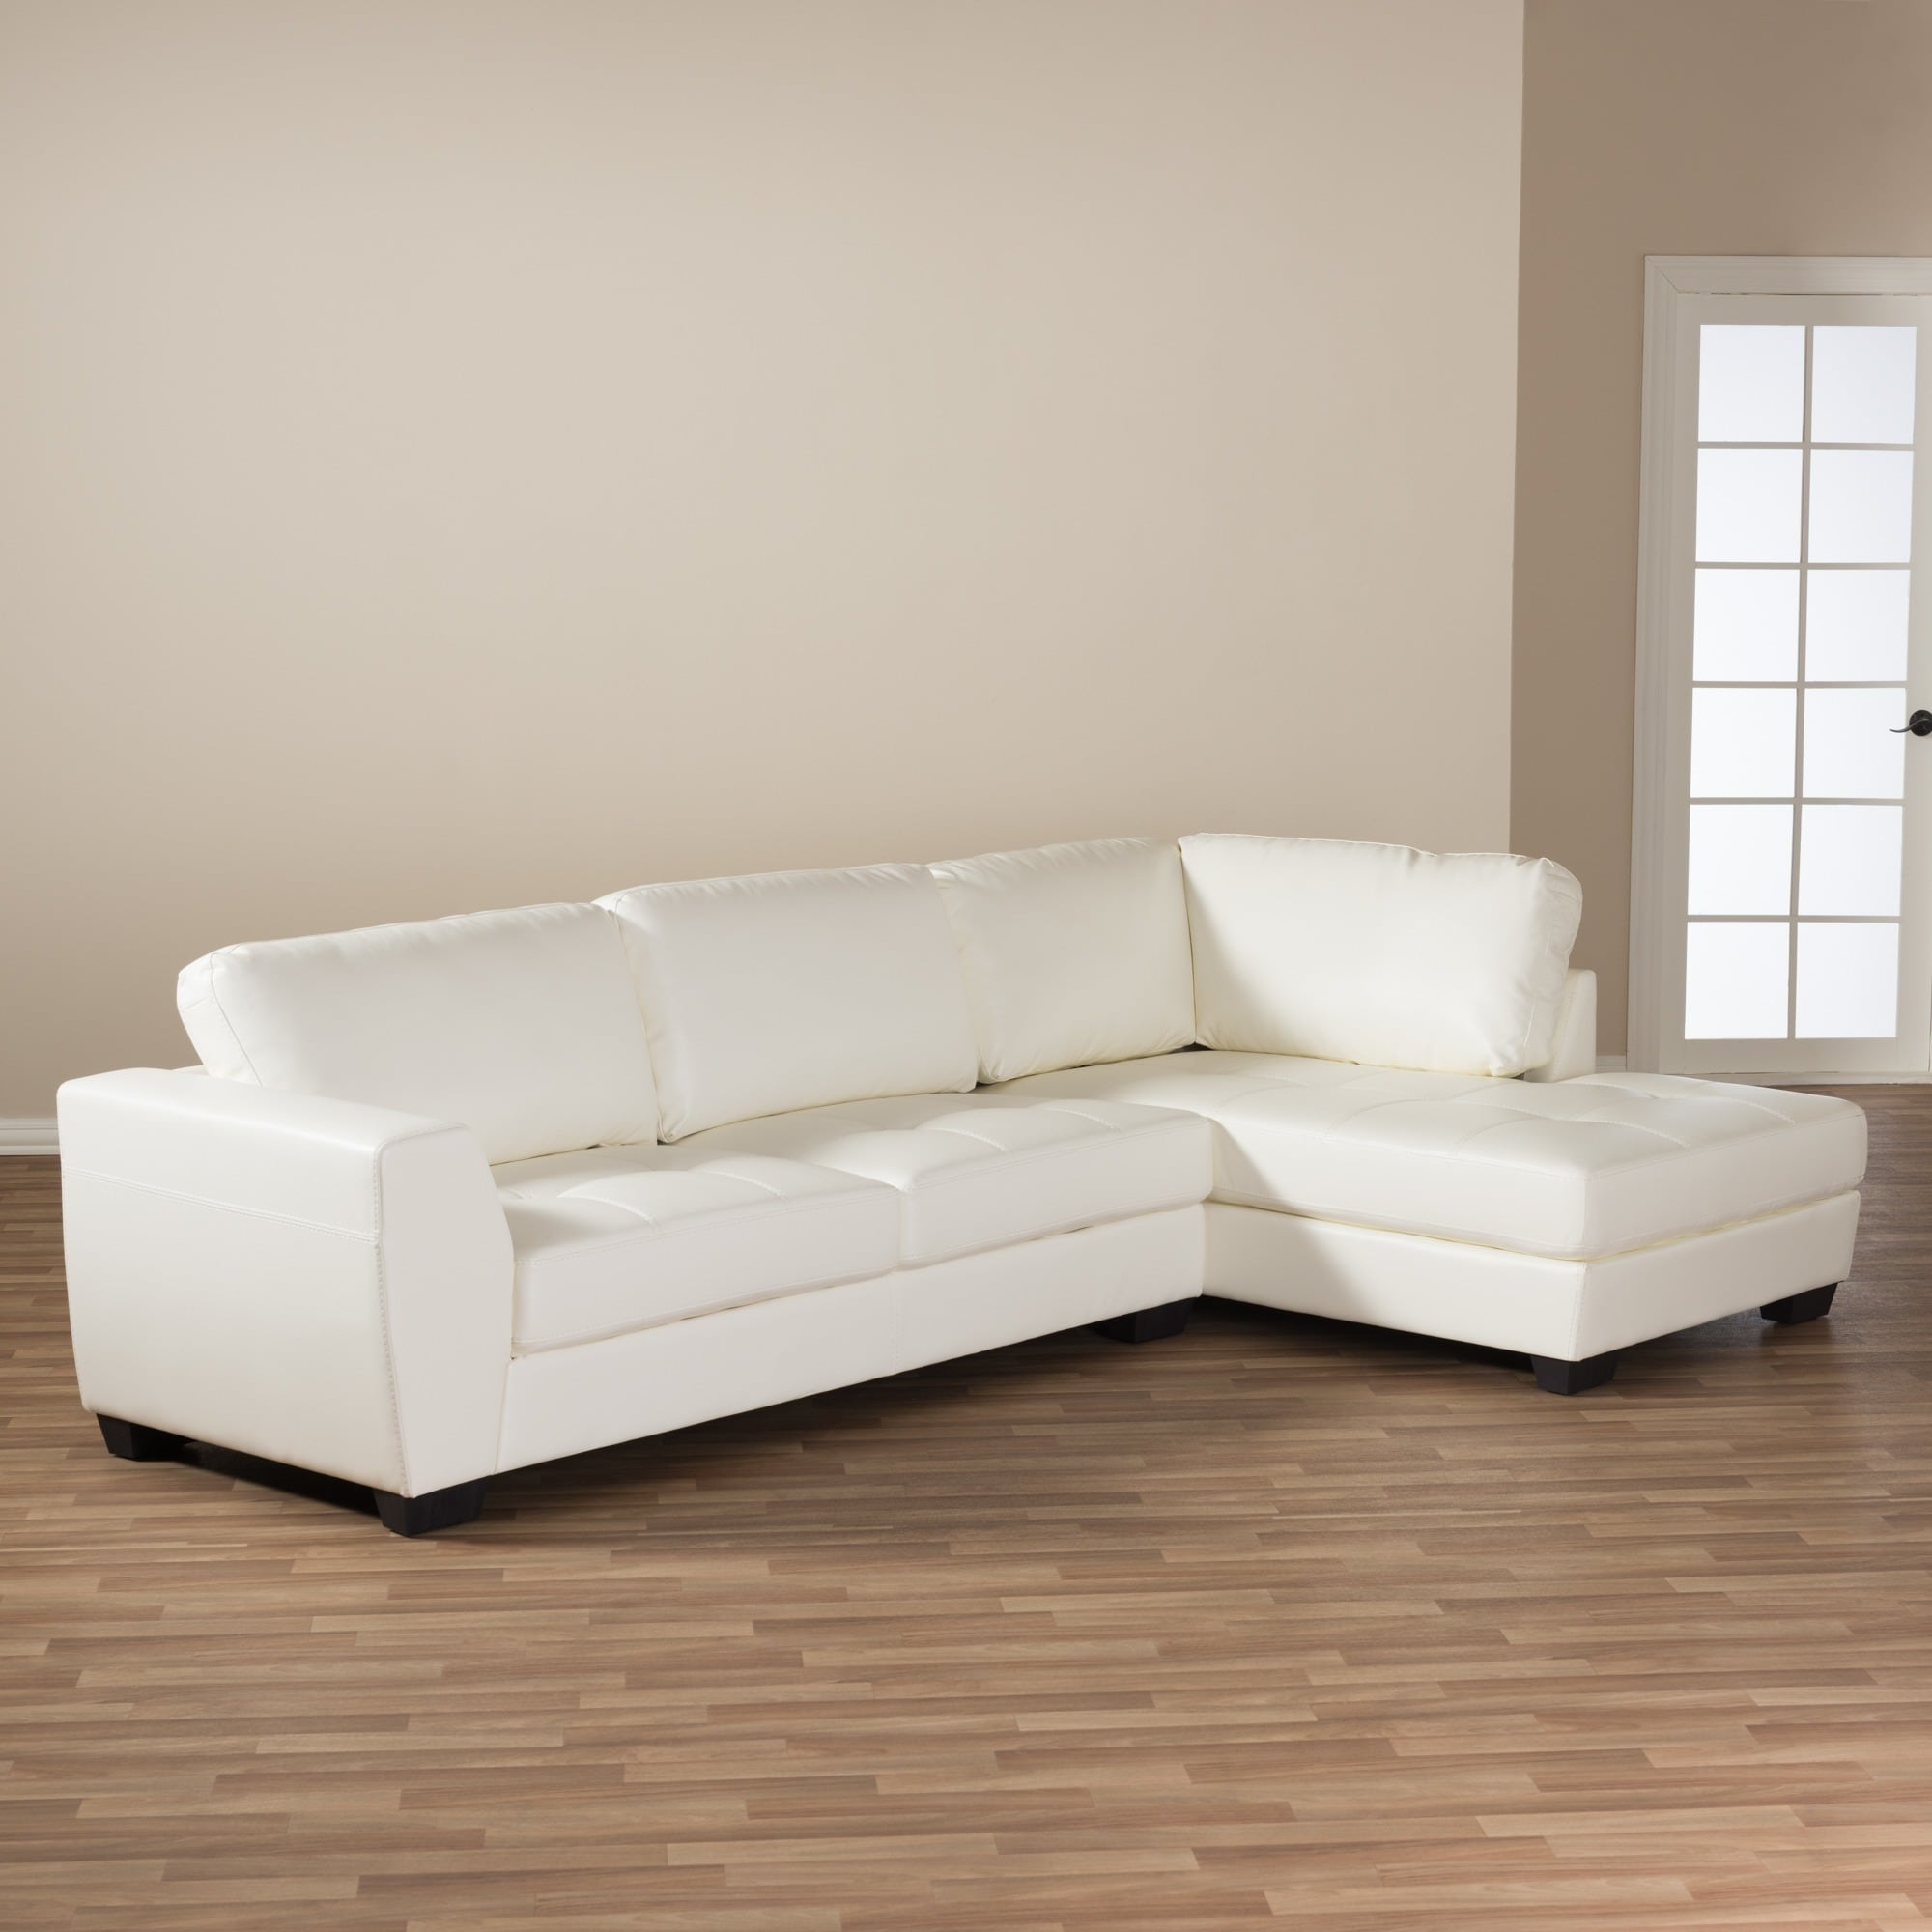 Shop Strick & Bolton Milles White Leather Modern Sectional Sofa Set ...